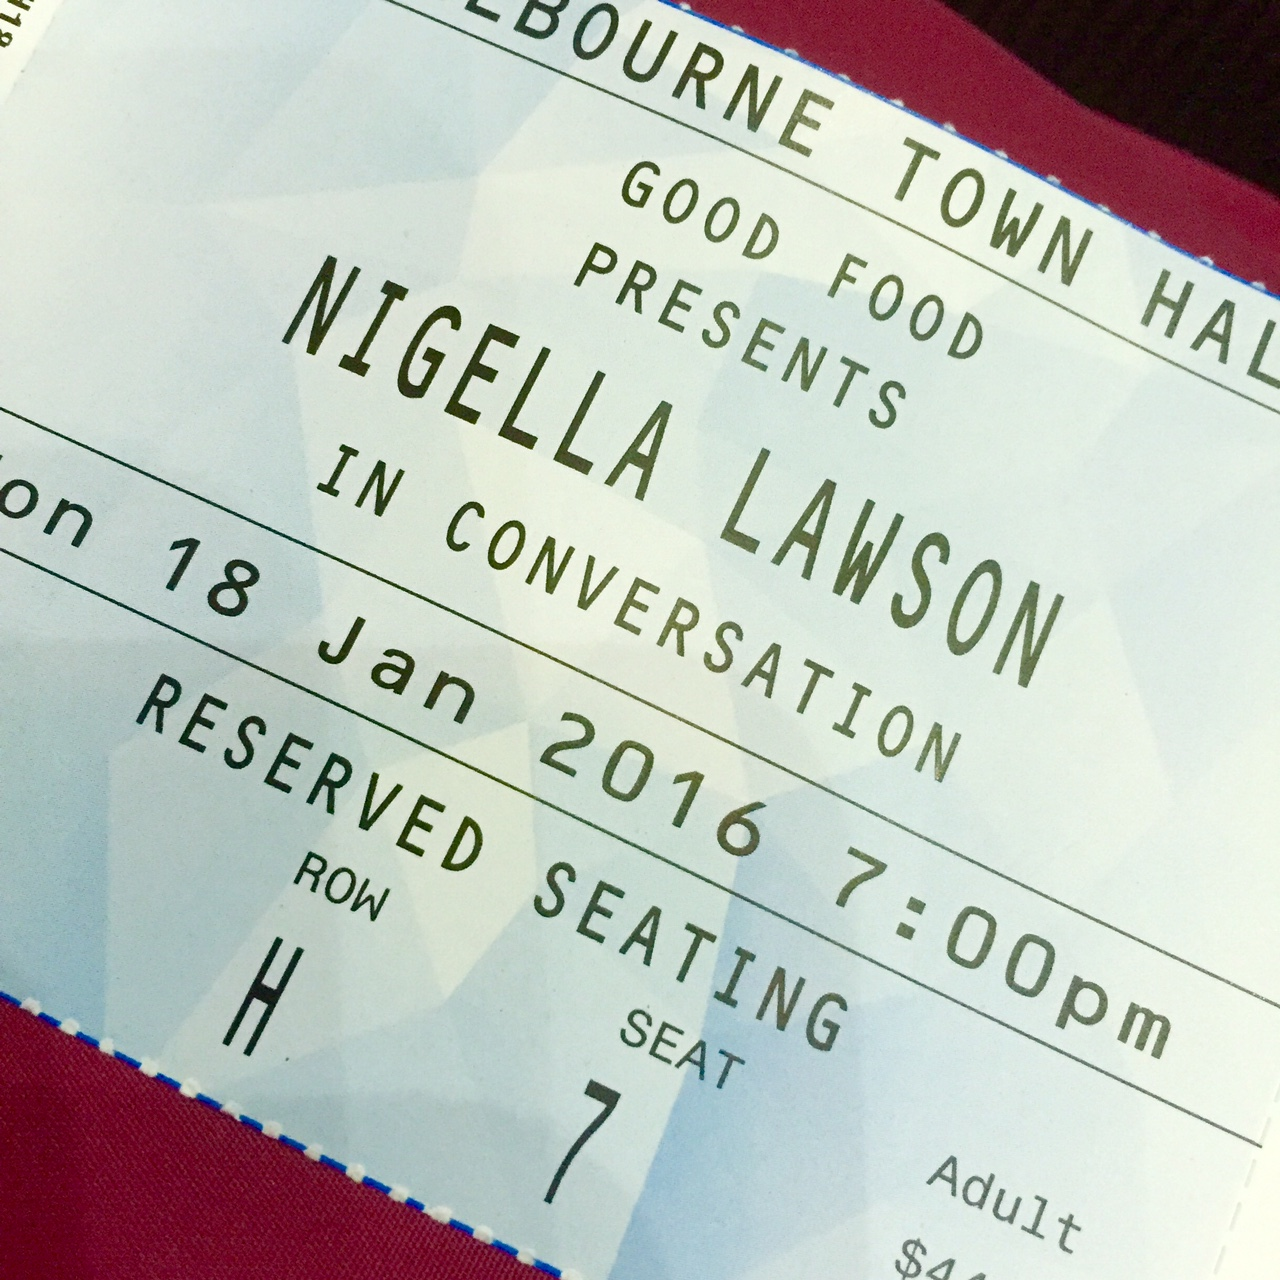 Nigella at the town hall